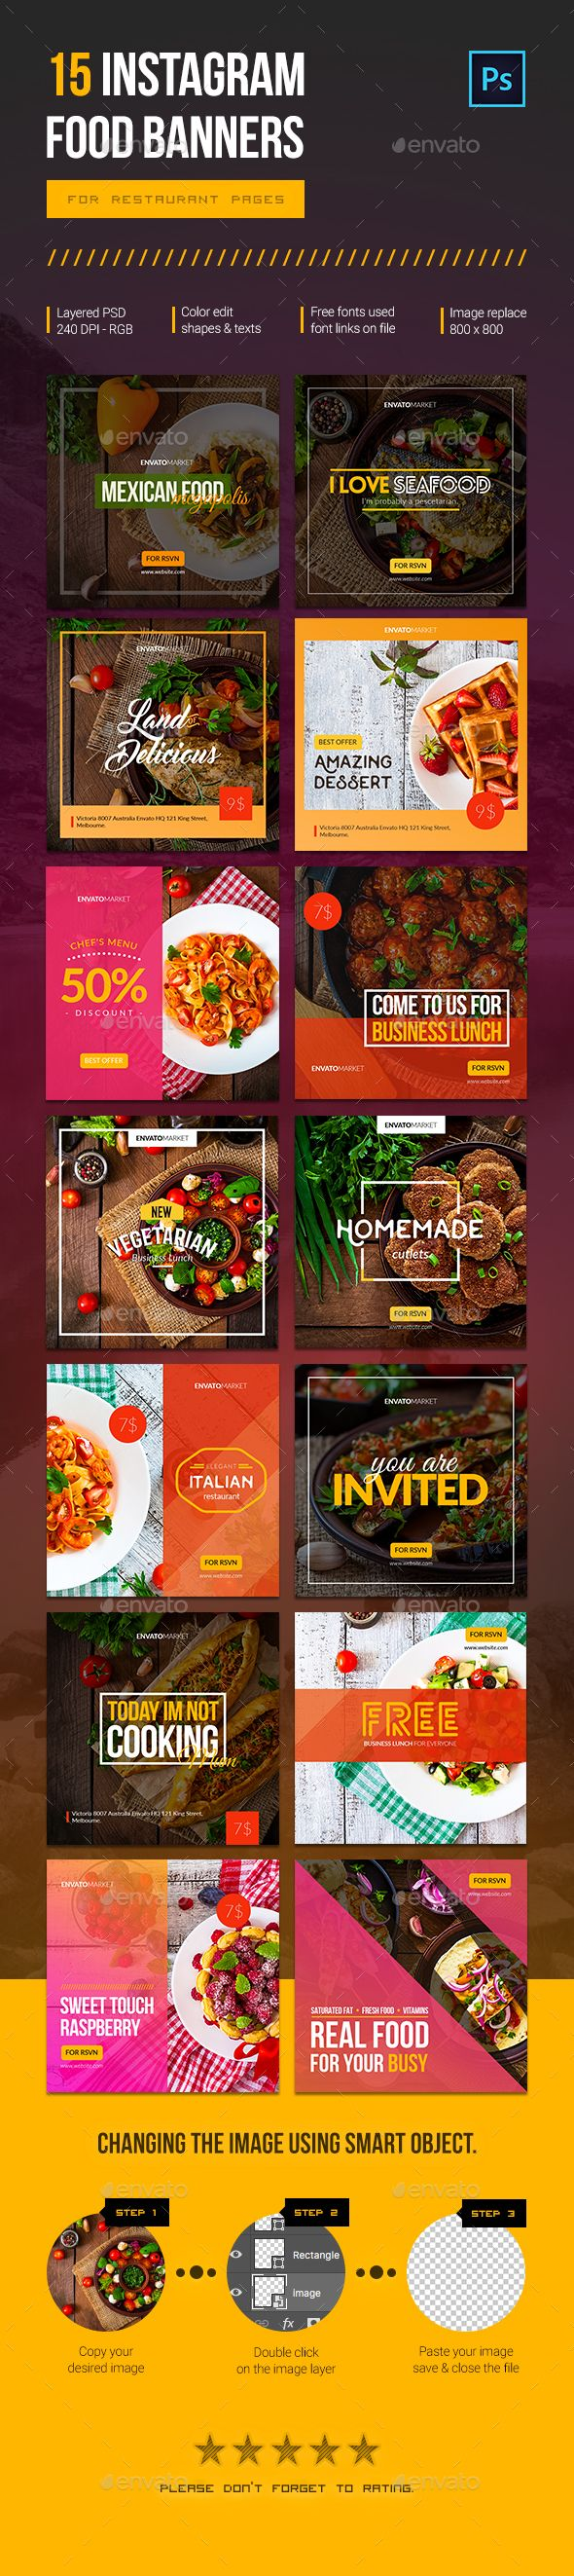 15 Instagram Food Banners for Restaurants  Instagram food banners for restaurant pages. Can be used for various food business, such as restaurant, cafe, fast food services and etc. Very easy to change colour variations, photos and elements.  Features :  Resolution 800 × 800 px 240 dpi RGB color mode 15 PSD files Shapes and Smart objects Help file included Free font used. Listed in the Help File. PHOTOS ARE NOT INCLUDED.